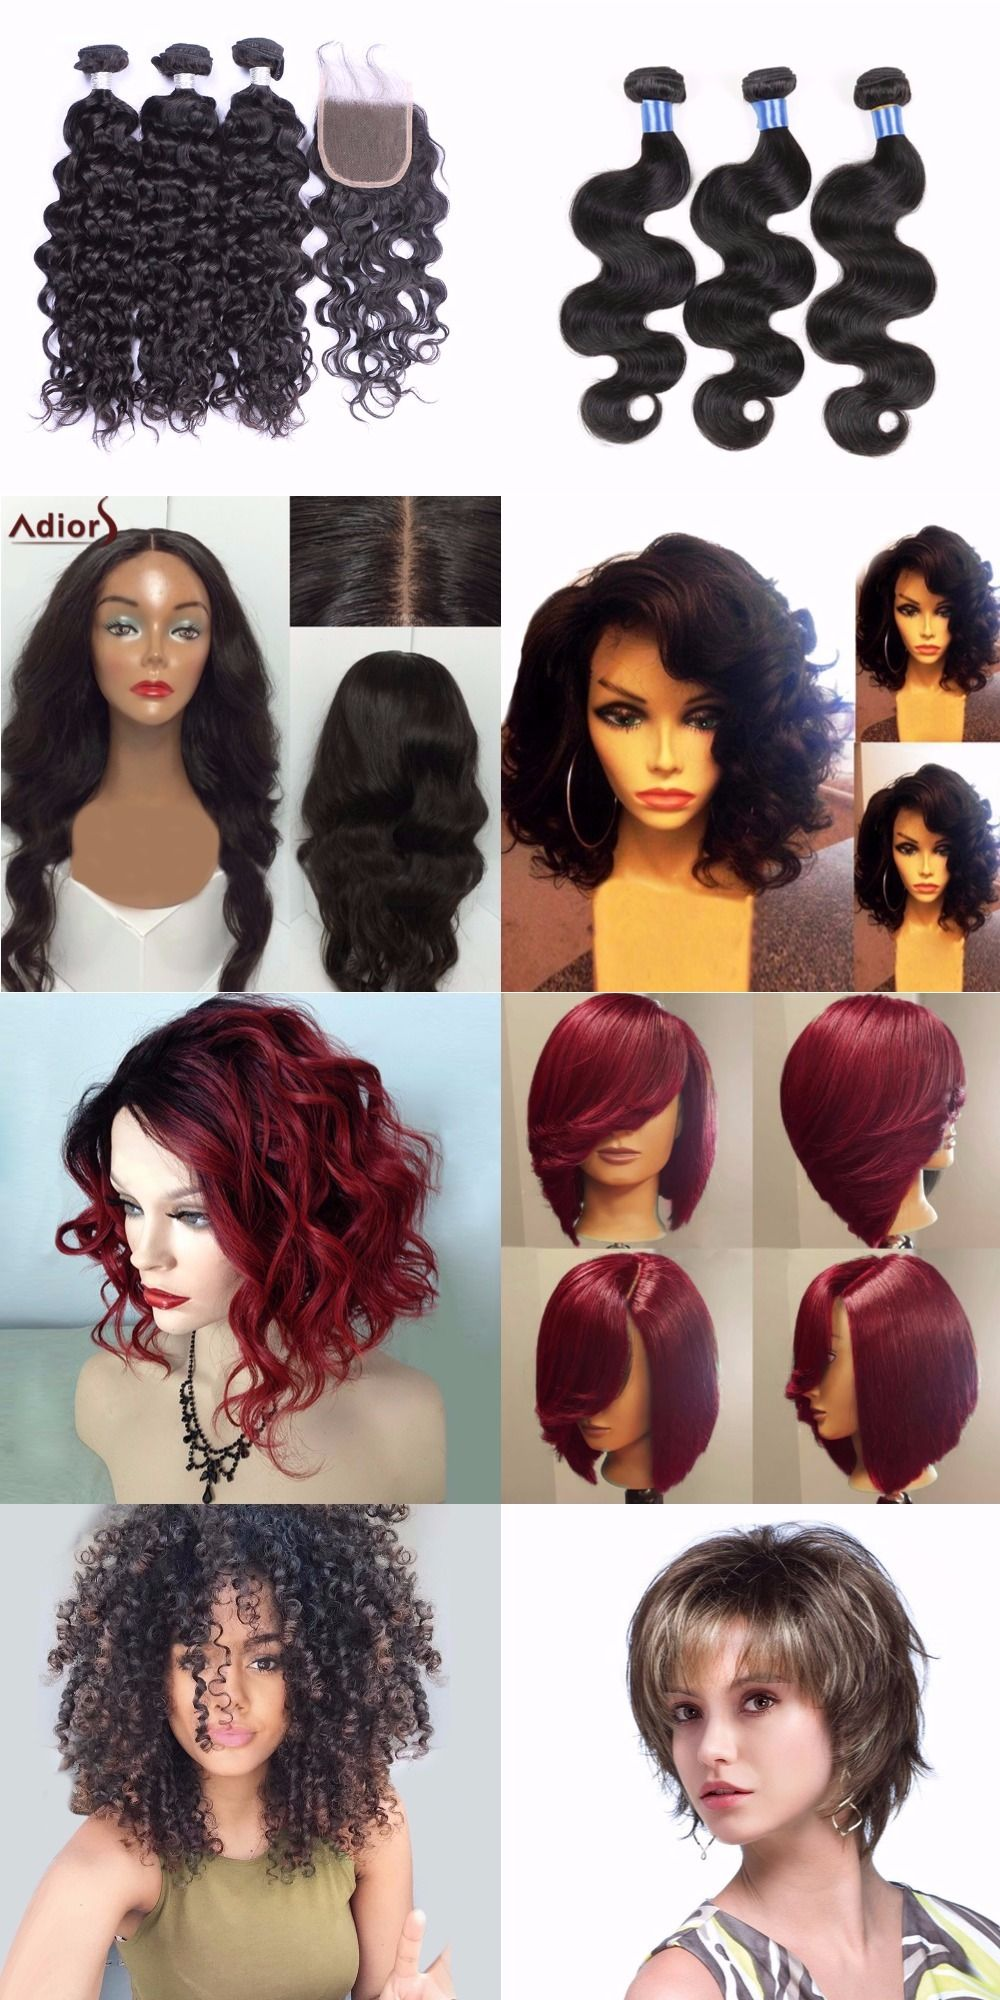 Freeshipping 500 Trendy Wigs For Your Hair Style Start From 2 99 Up To 65 Off Sammydress Com Wig Hairstyles Human Hair Wigs Barbie Hair